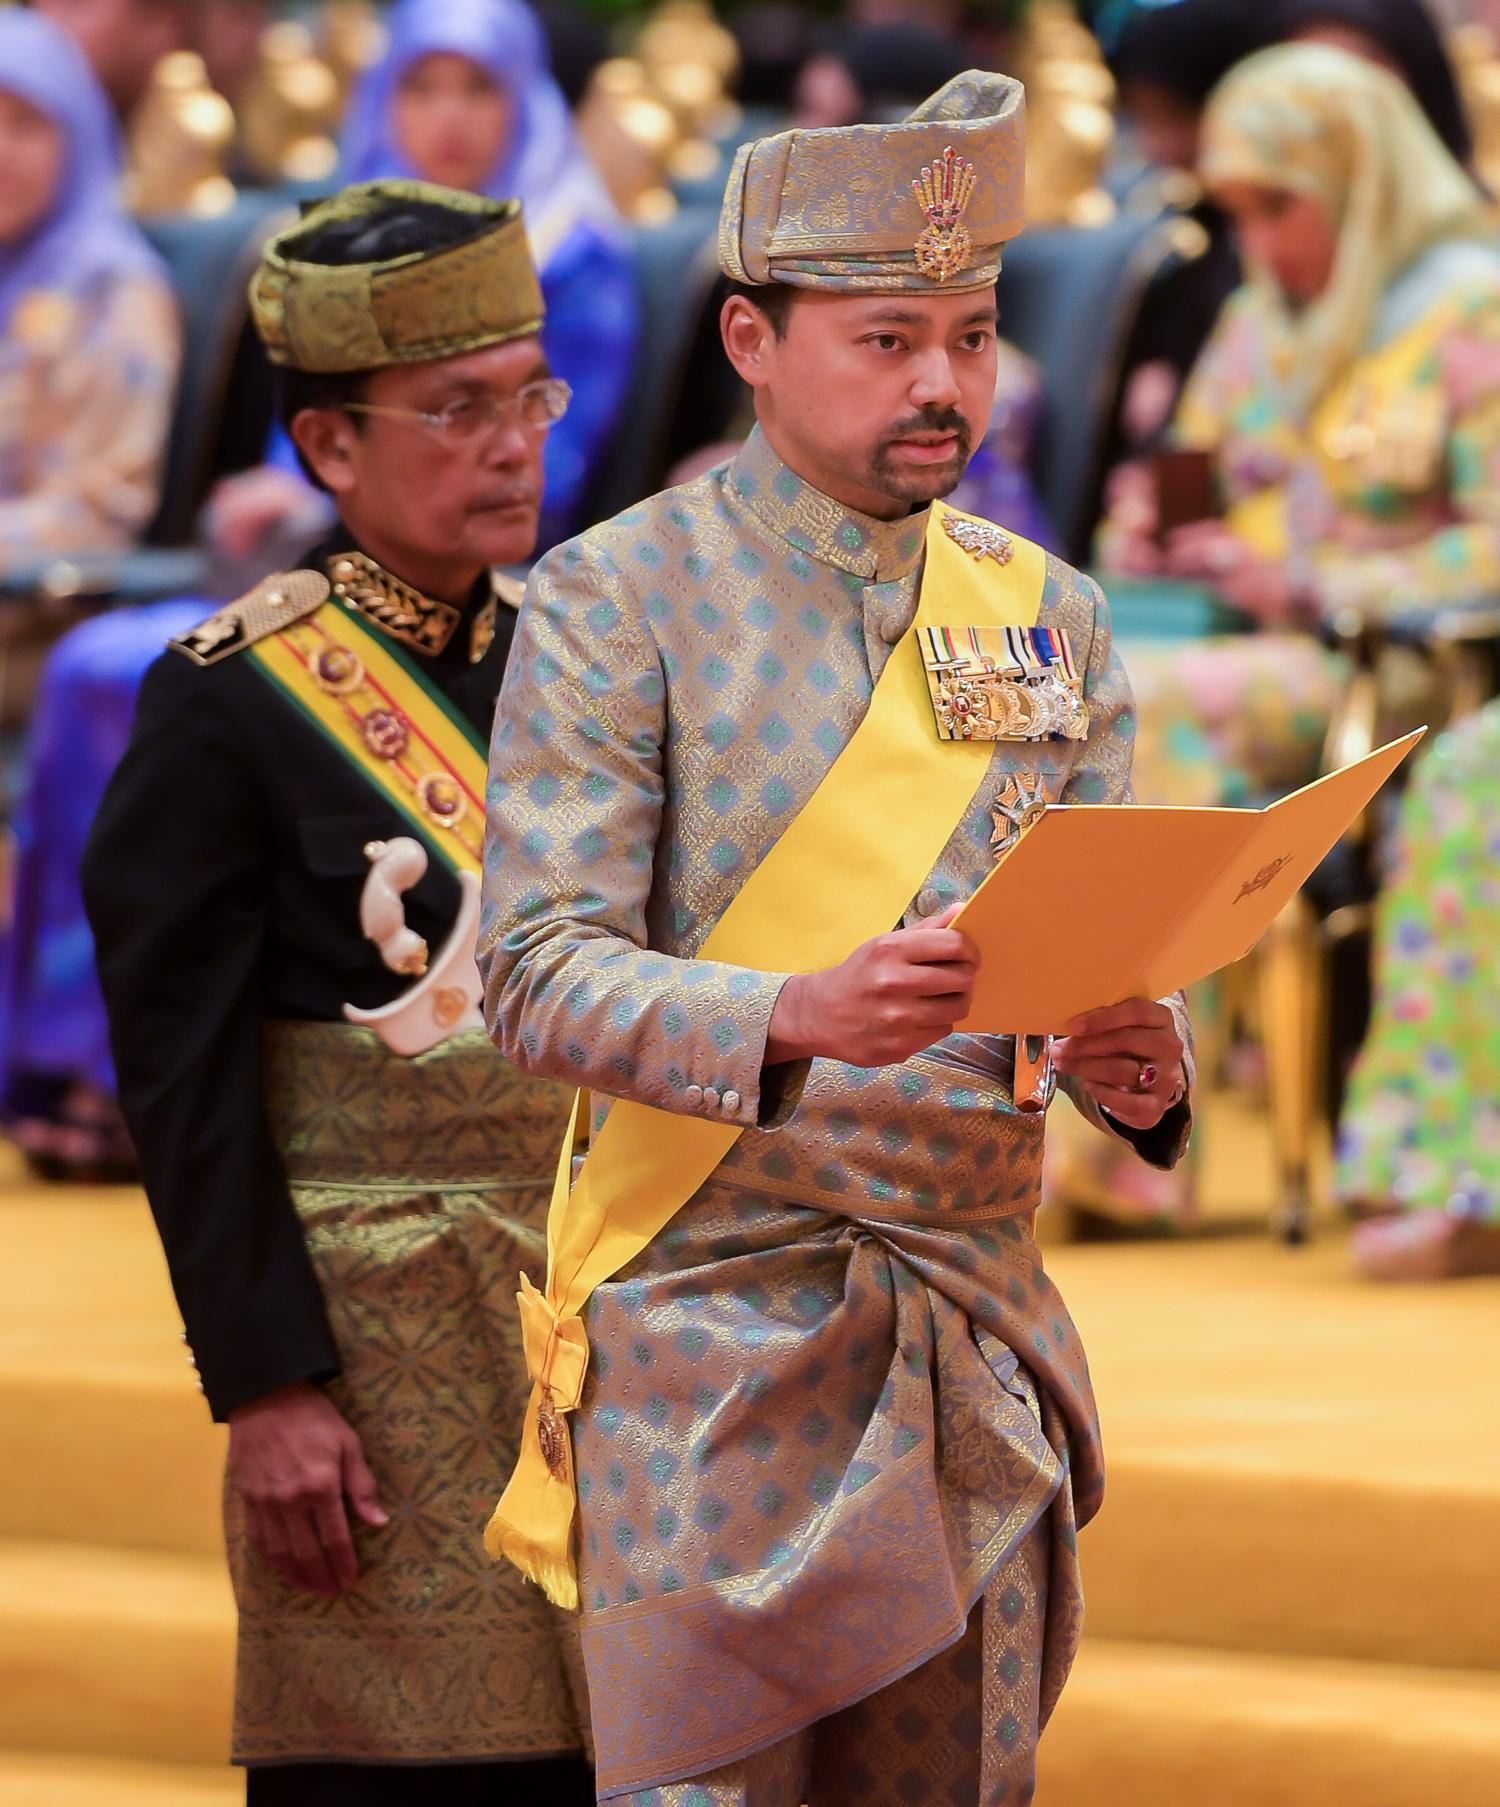 HRH Prince Haji Al-Muhtadee Billah, the Crown Prince and Senior Minister at The Prime Minister's Office, delivers a sabda at Istana Nurul Iman. Photo: Infofoto